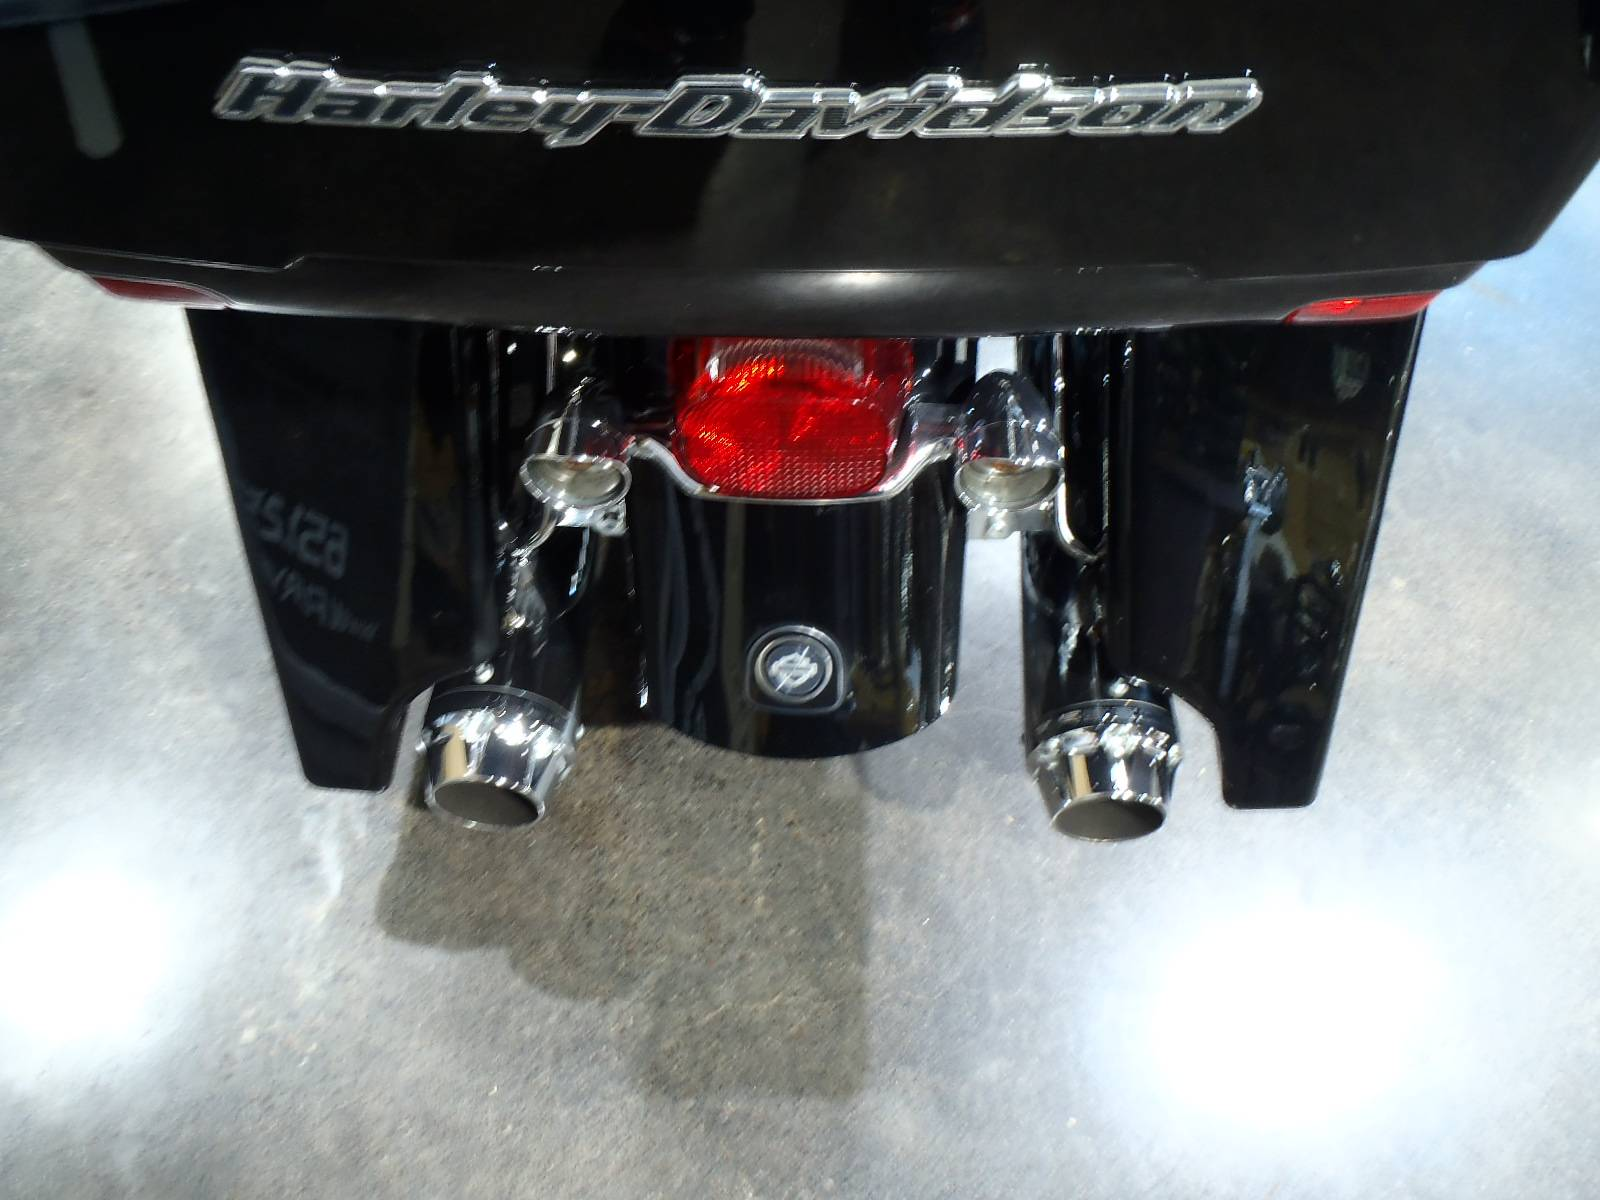 2012 Harley-Davidson Road Glide® Ultra in South Saint Paul, Minnesota - Photo 14